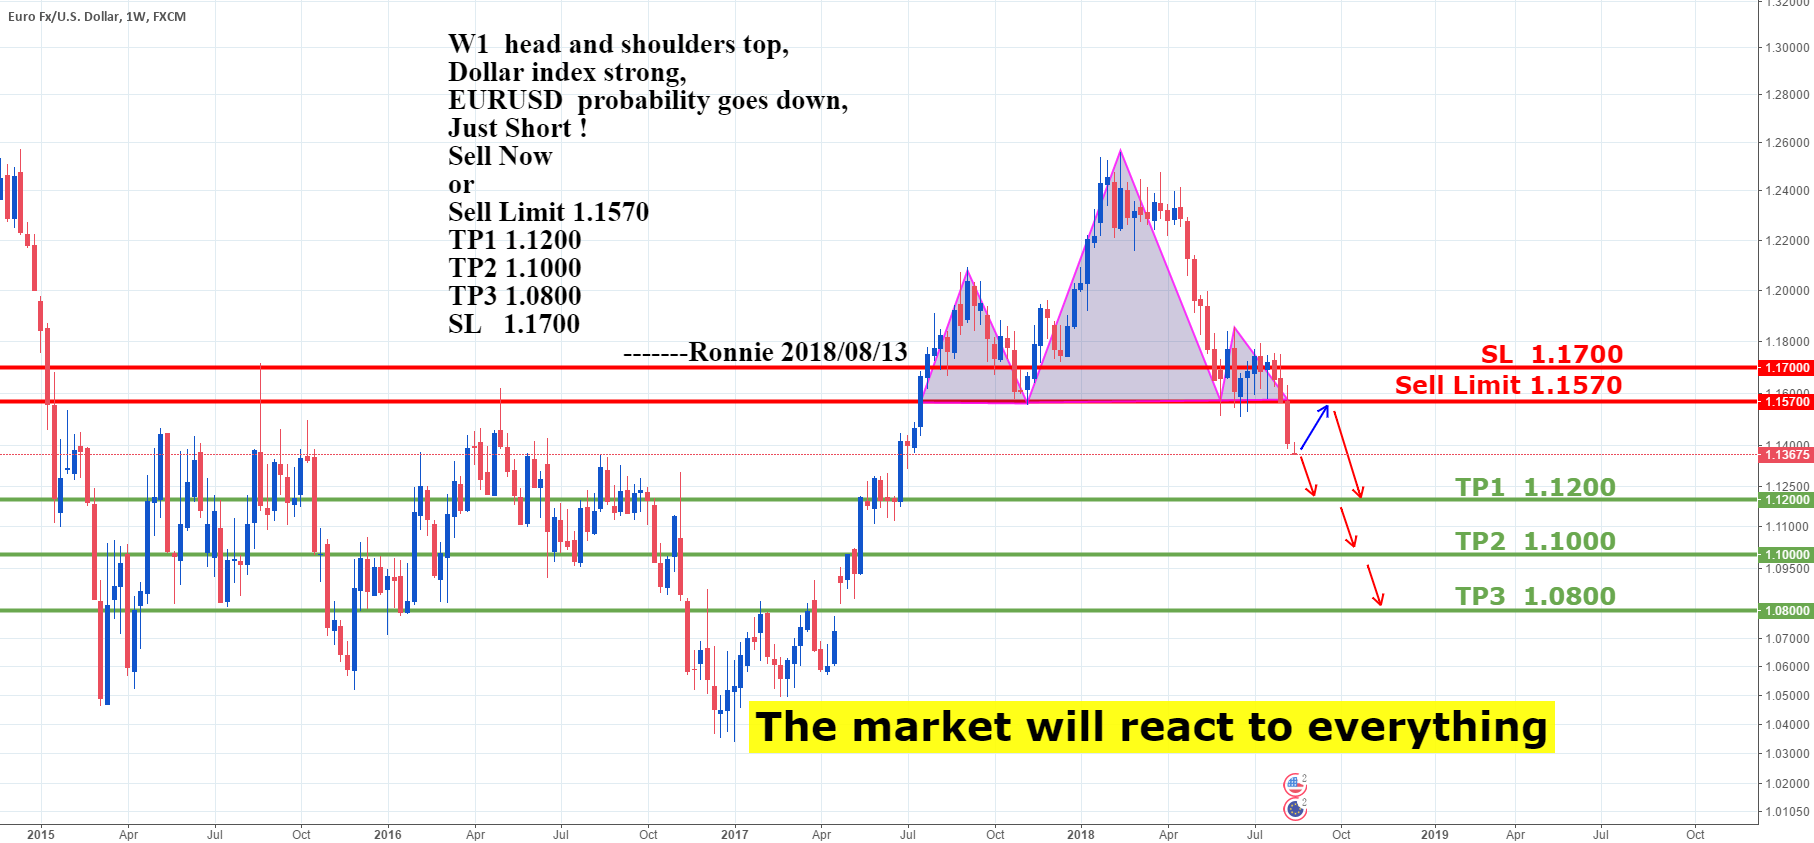 EURUSD  Sell Now or Sell Limit